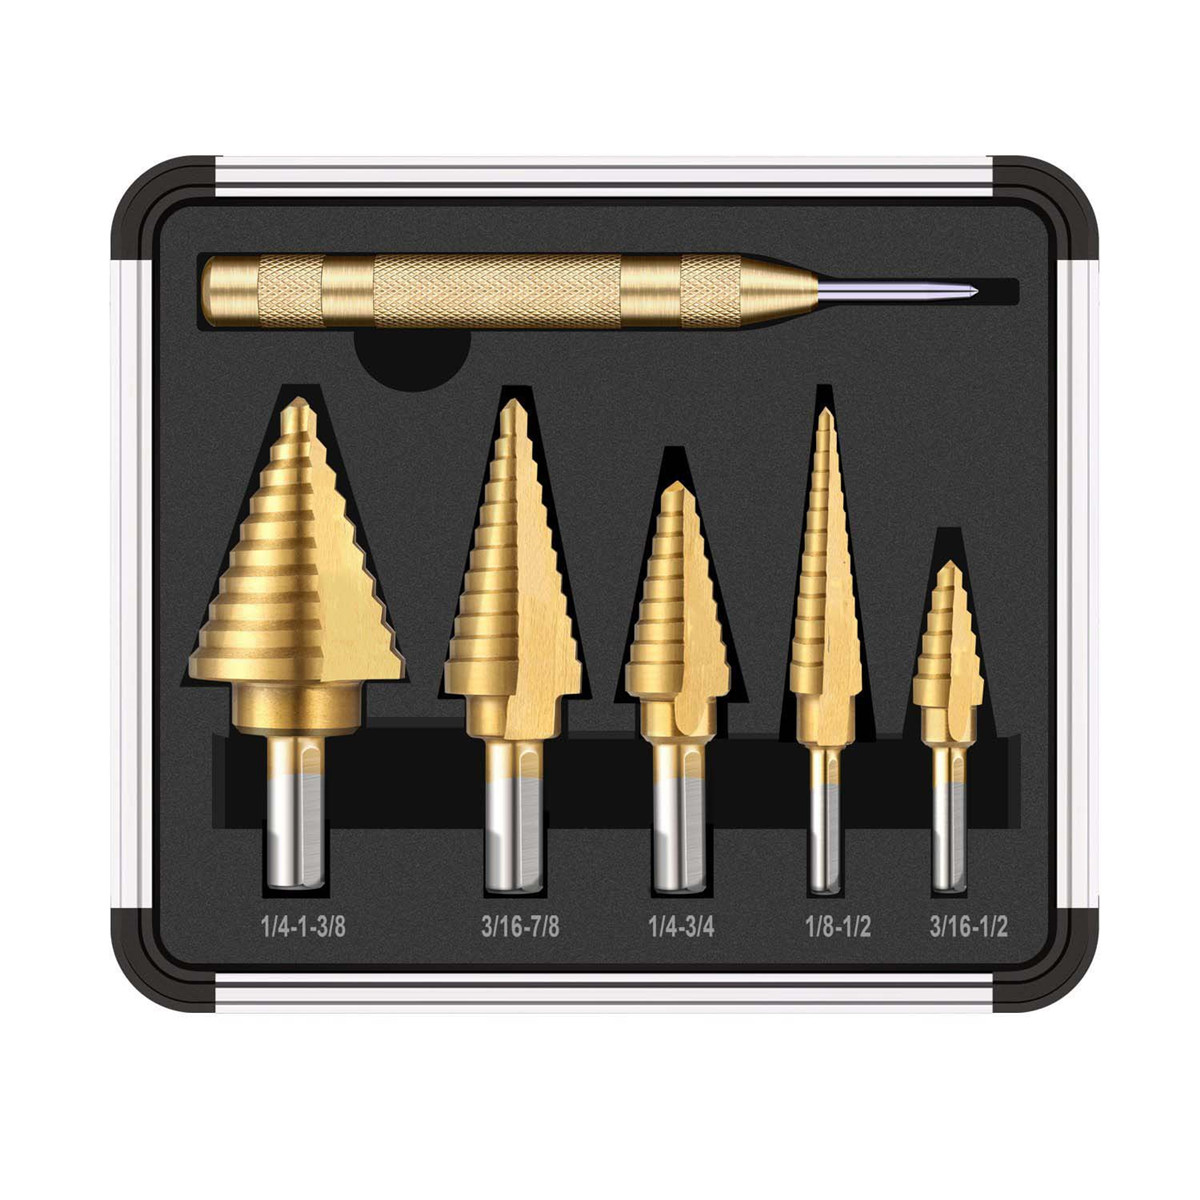 6pcs HSS Titanium Coated Step Drill Bit With Center Punch Drill Set Hole Cutter Drilling Tool